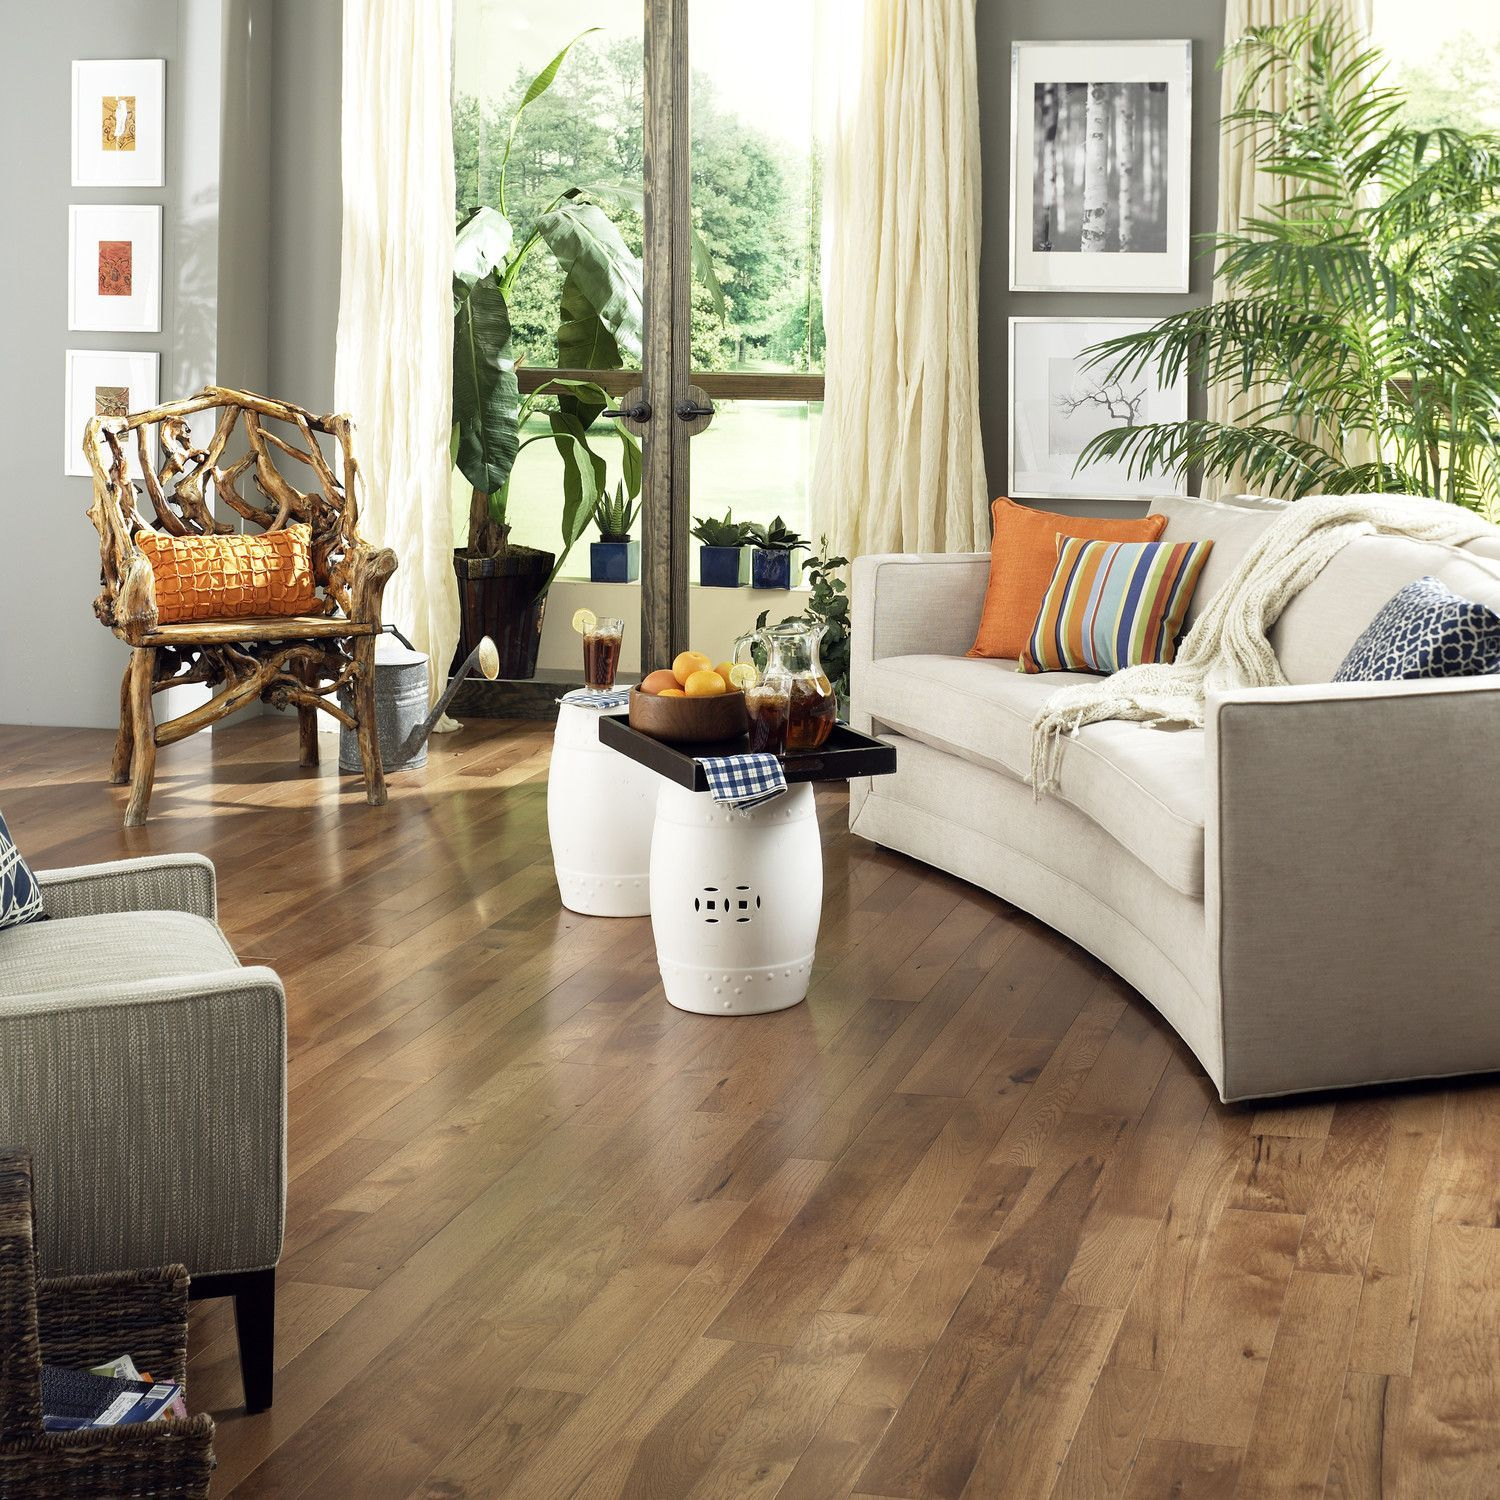 """7.24/foot 5"""" Solid Hickory Hardwood Flooring in Saddle"""